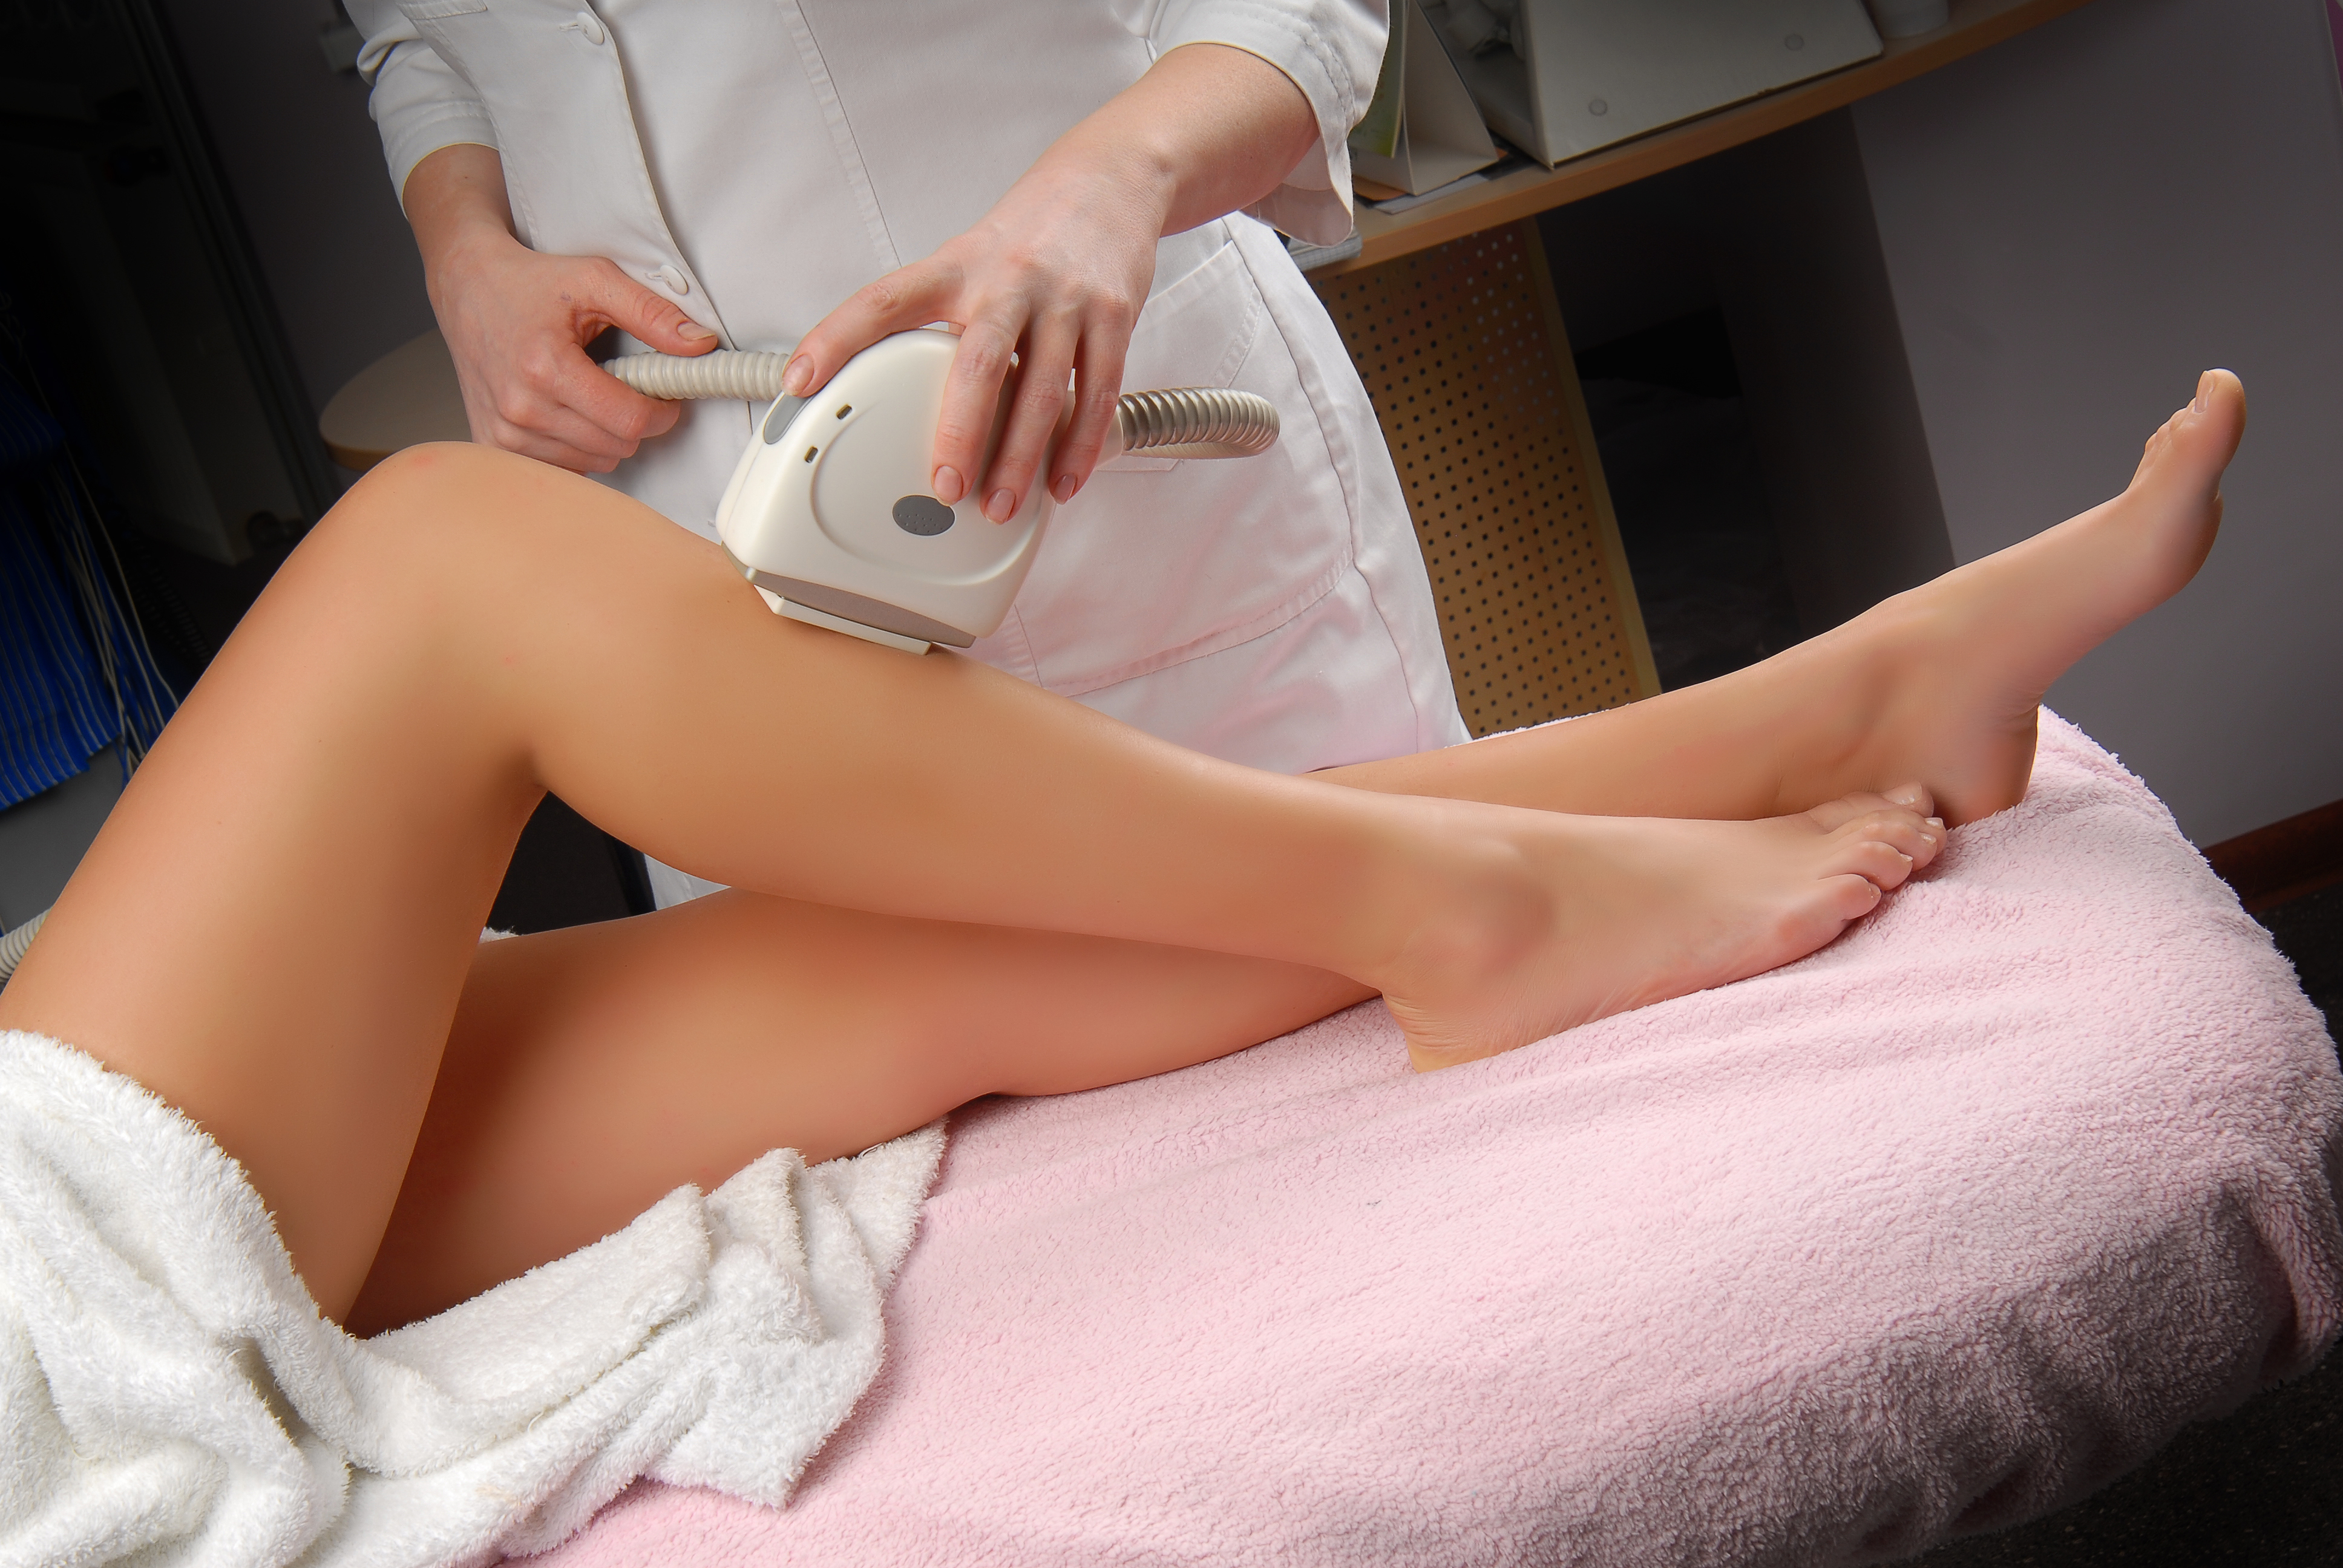 This is what it really looks like when you get laser hair removal